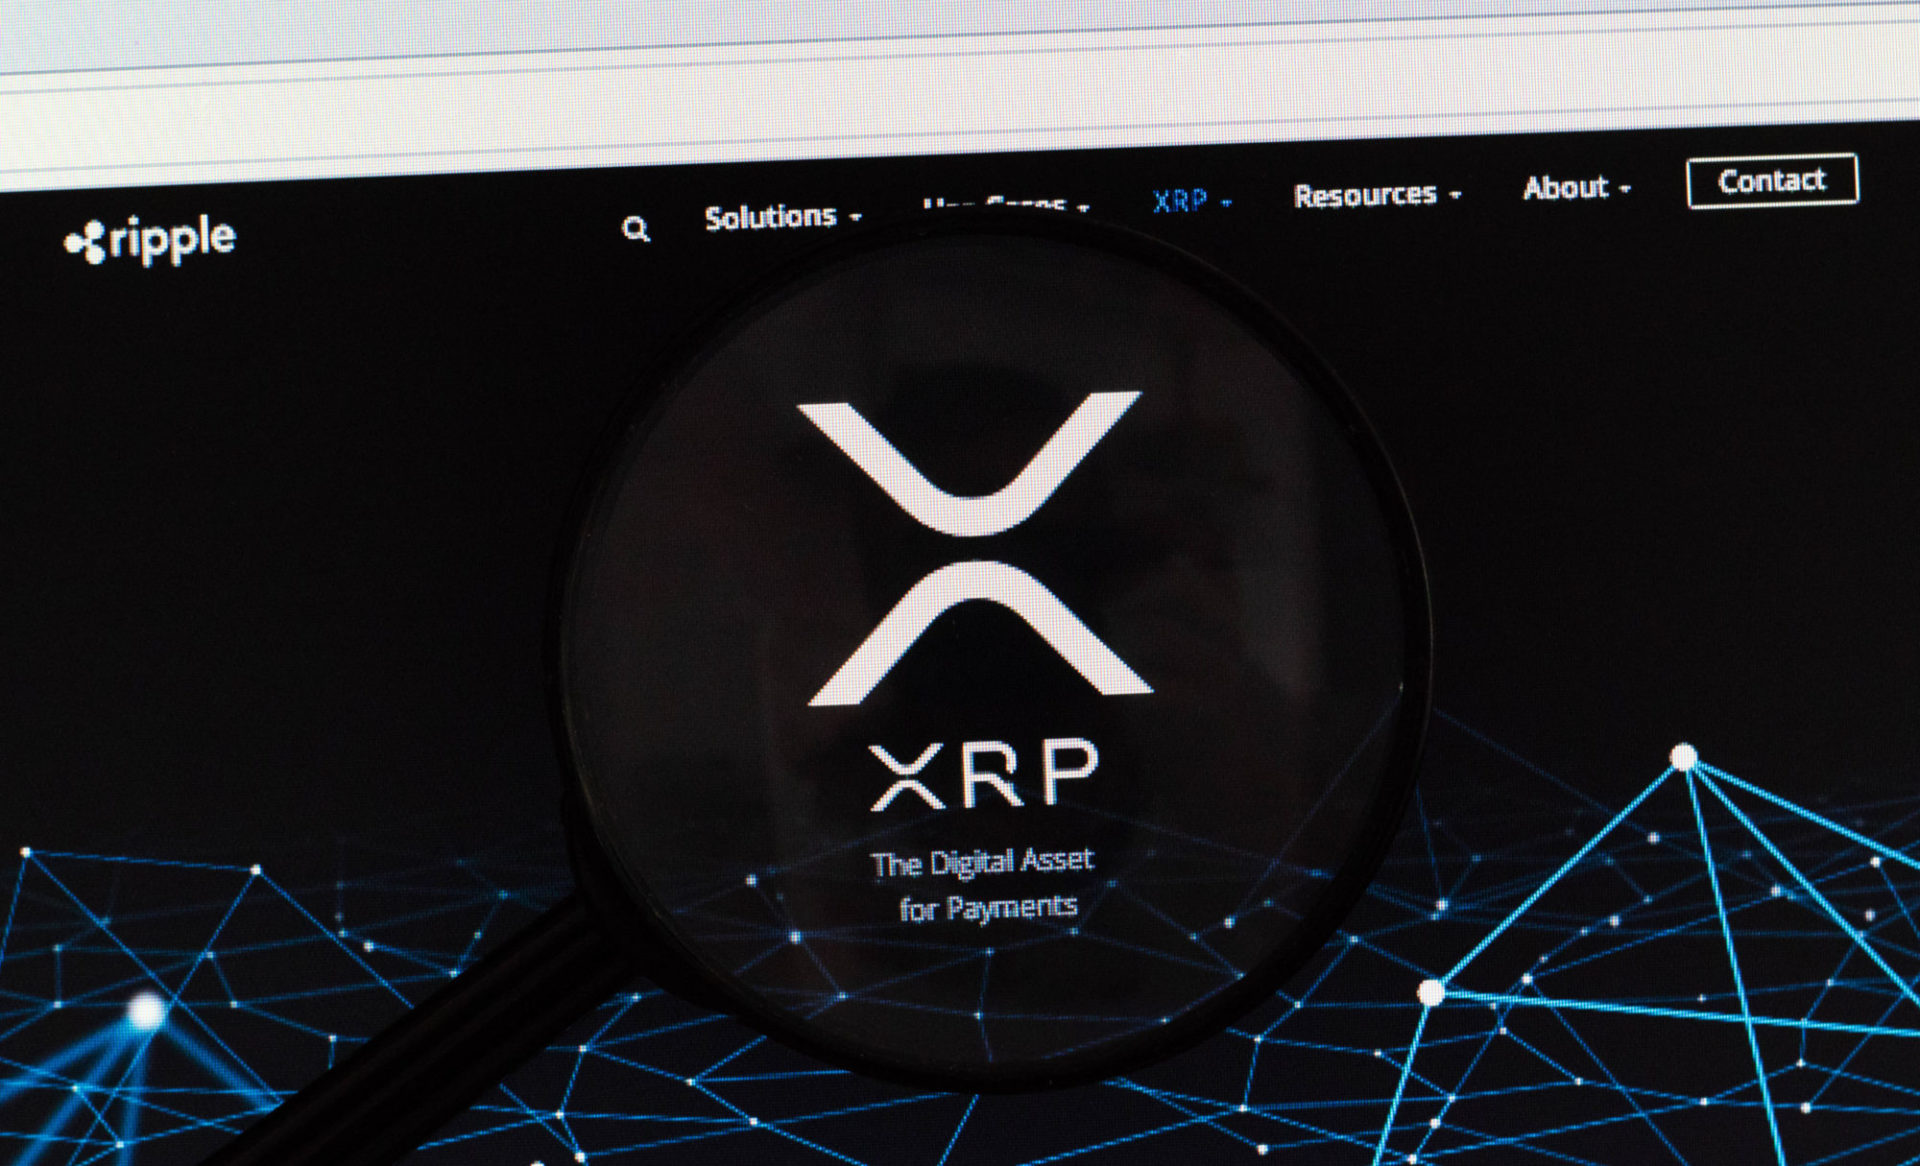 Crypto Analyst: Ripple Labs (XRP By Extension) Gaining Stature In Fintech 13